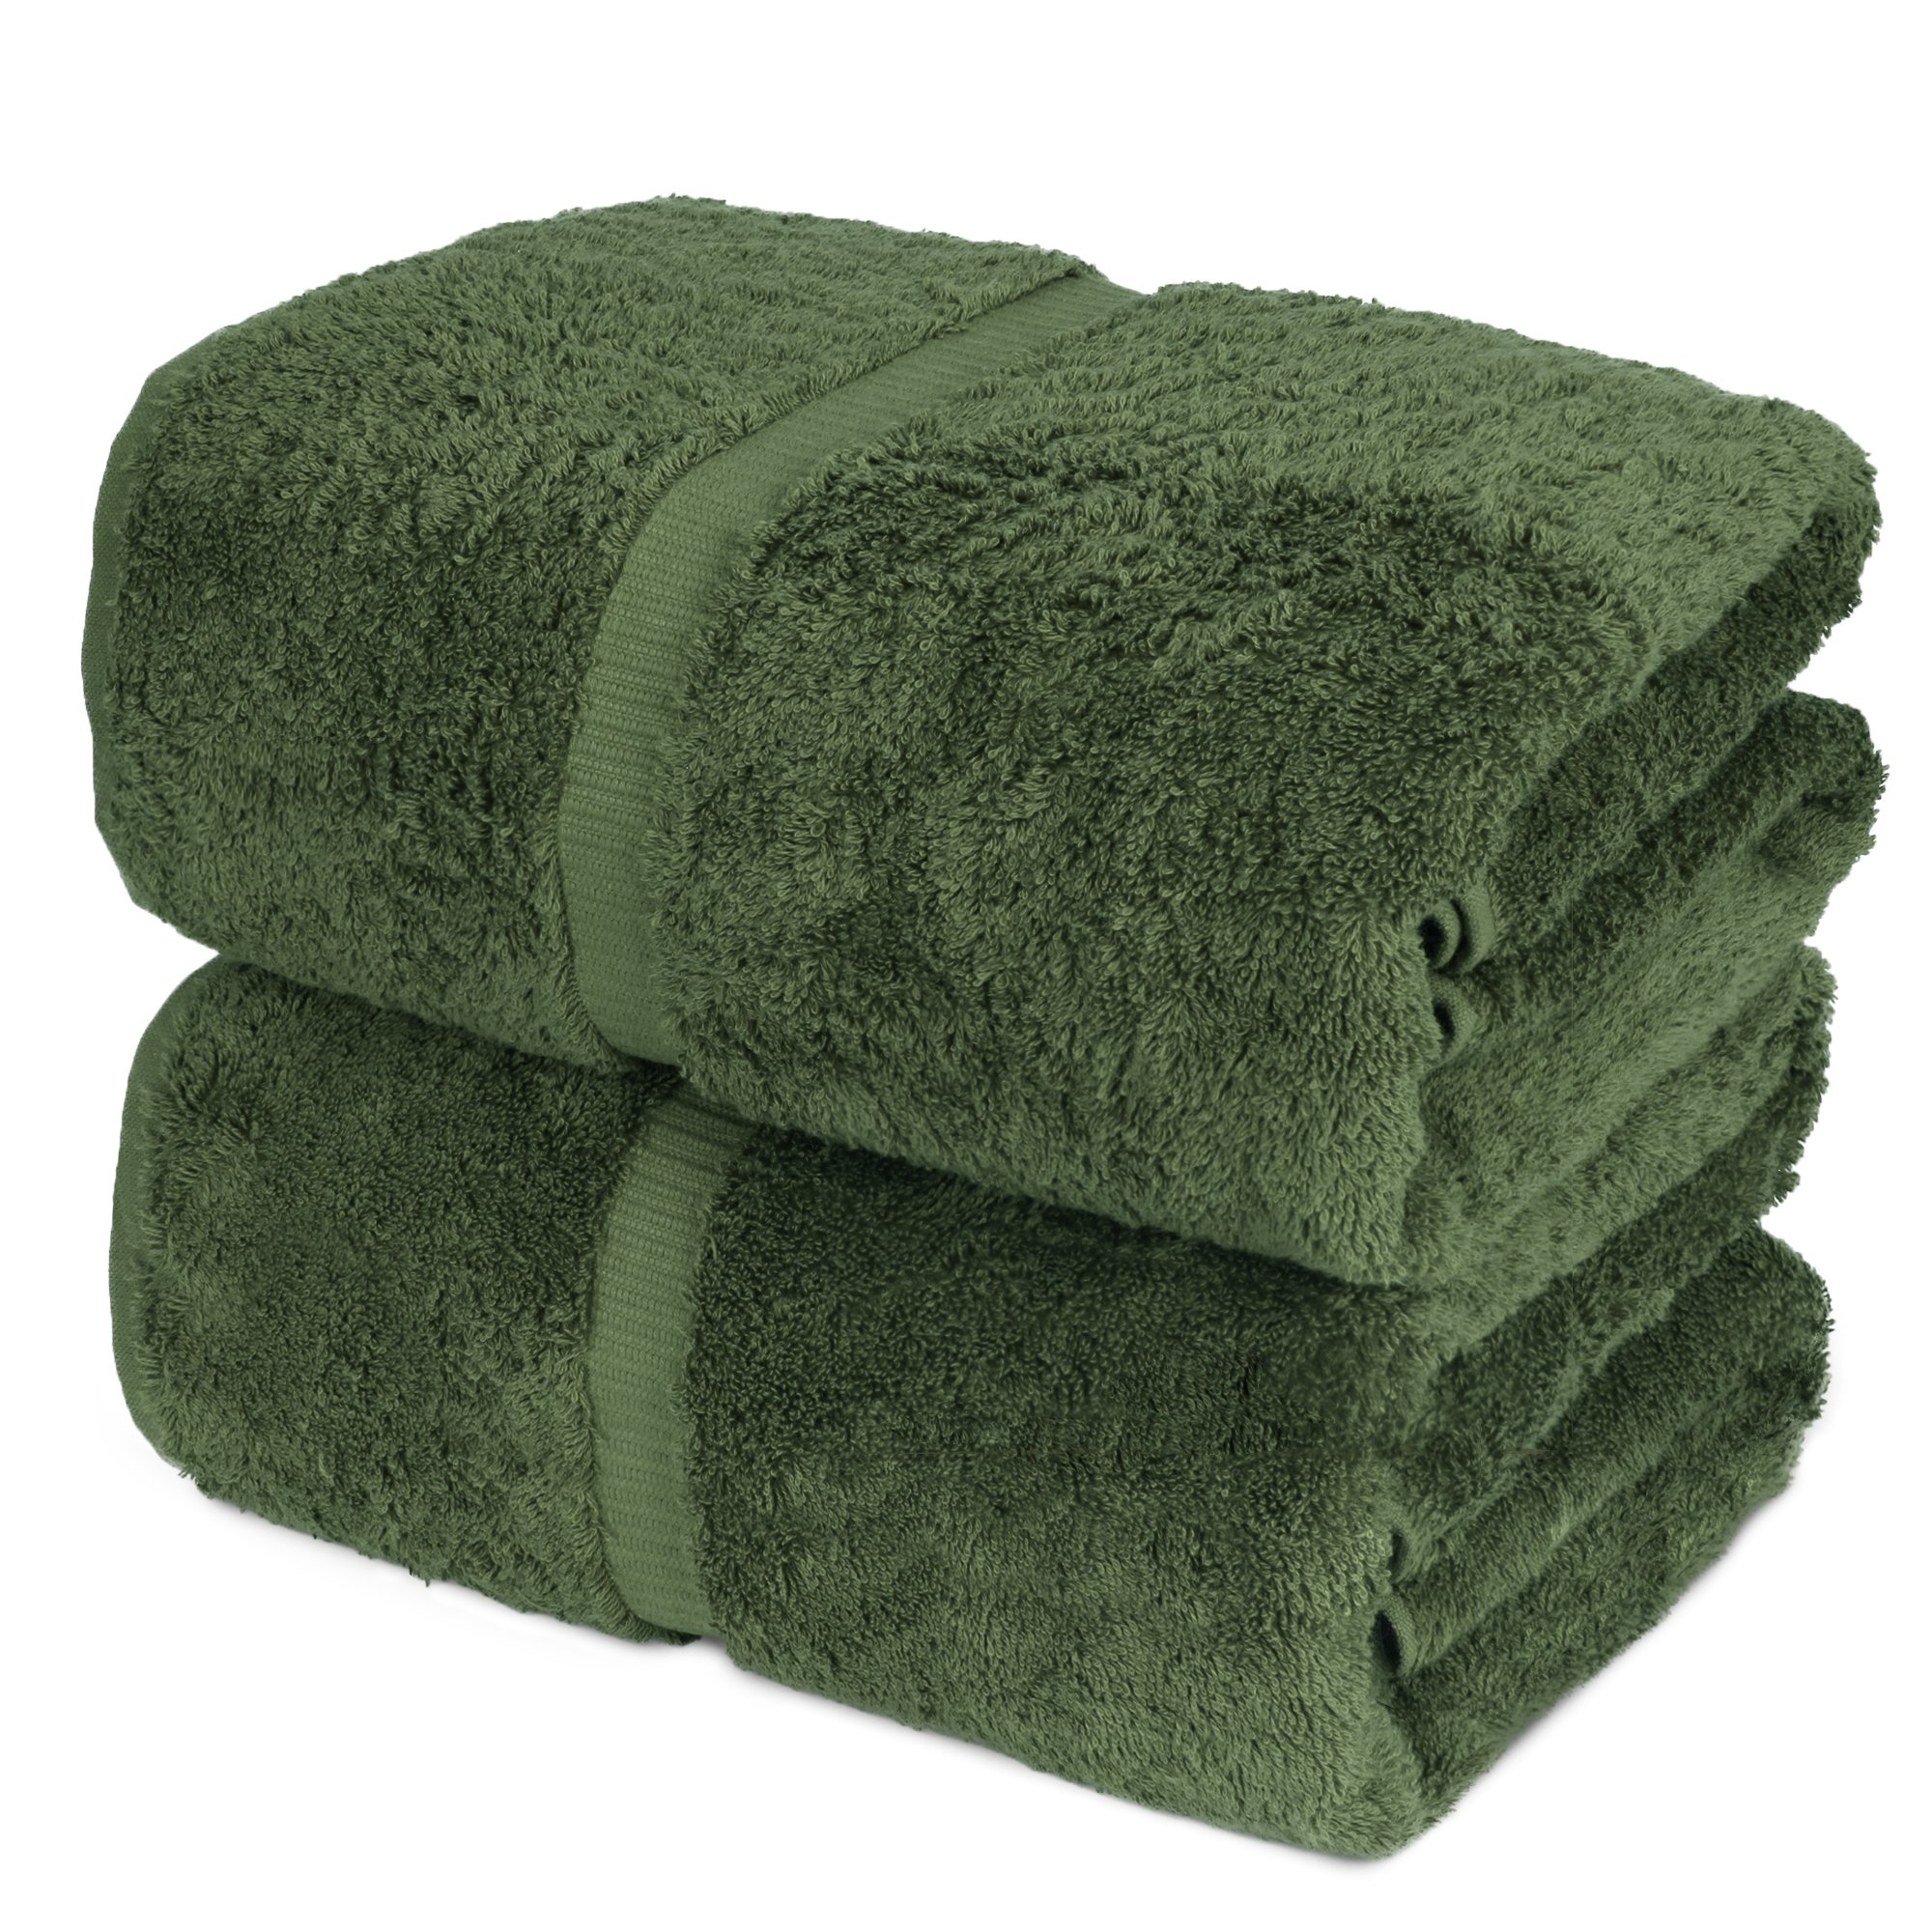 Luxury Super Soft Premium Cotton Bath Sheets, 700 GSM, 35 x 70 inches (Set of 2, Olive Green)